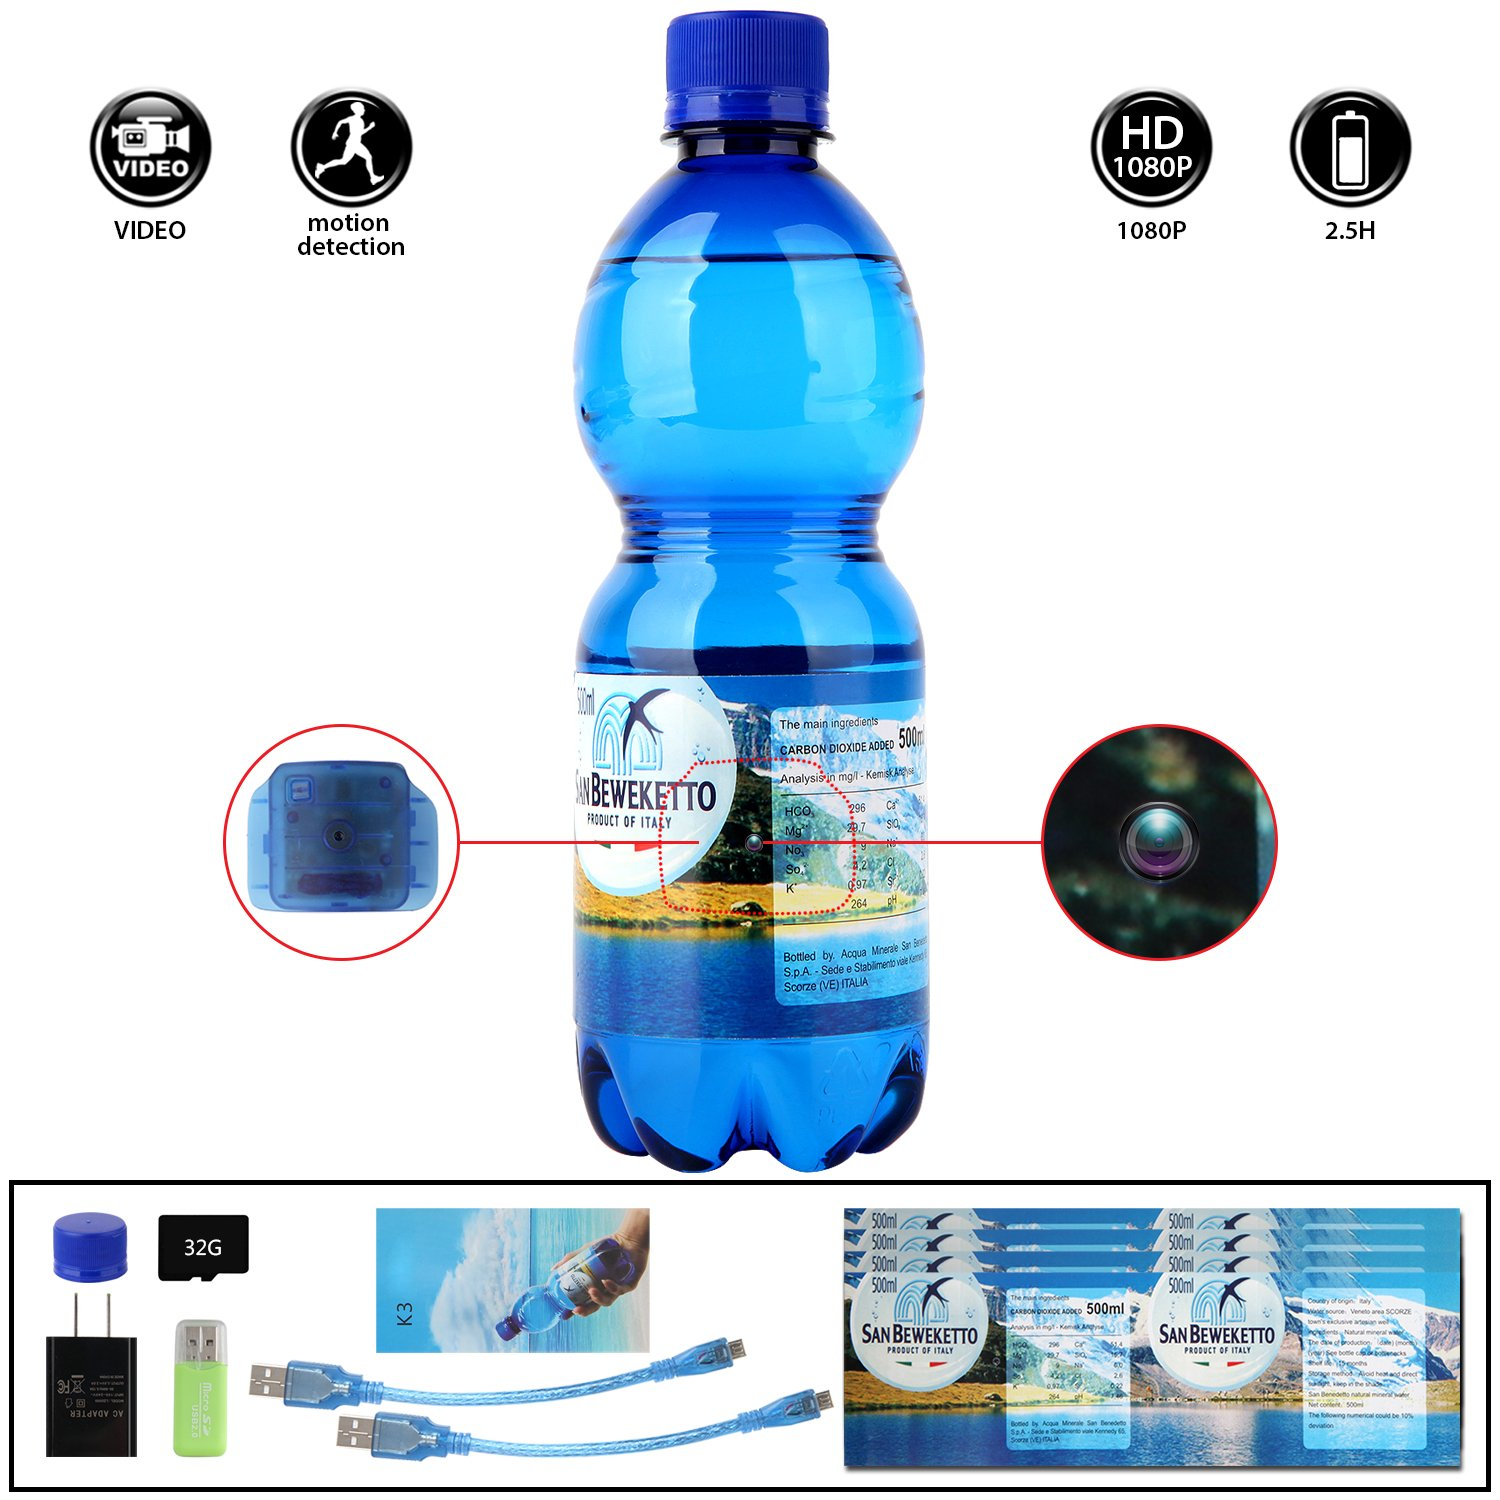 4. WCXCO Spy Camera Water Bottle Hidden Camera - 32GB 1080p Video-Taking for 2.5 hours Mini DV Surveillance Camcorder With Motion Detection Function